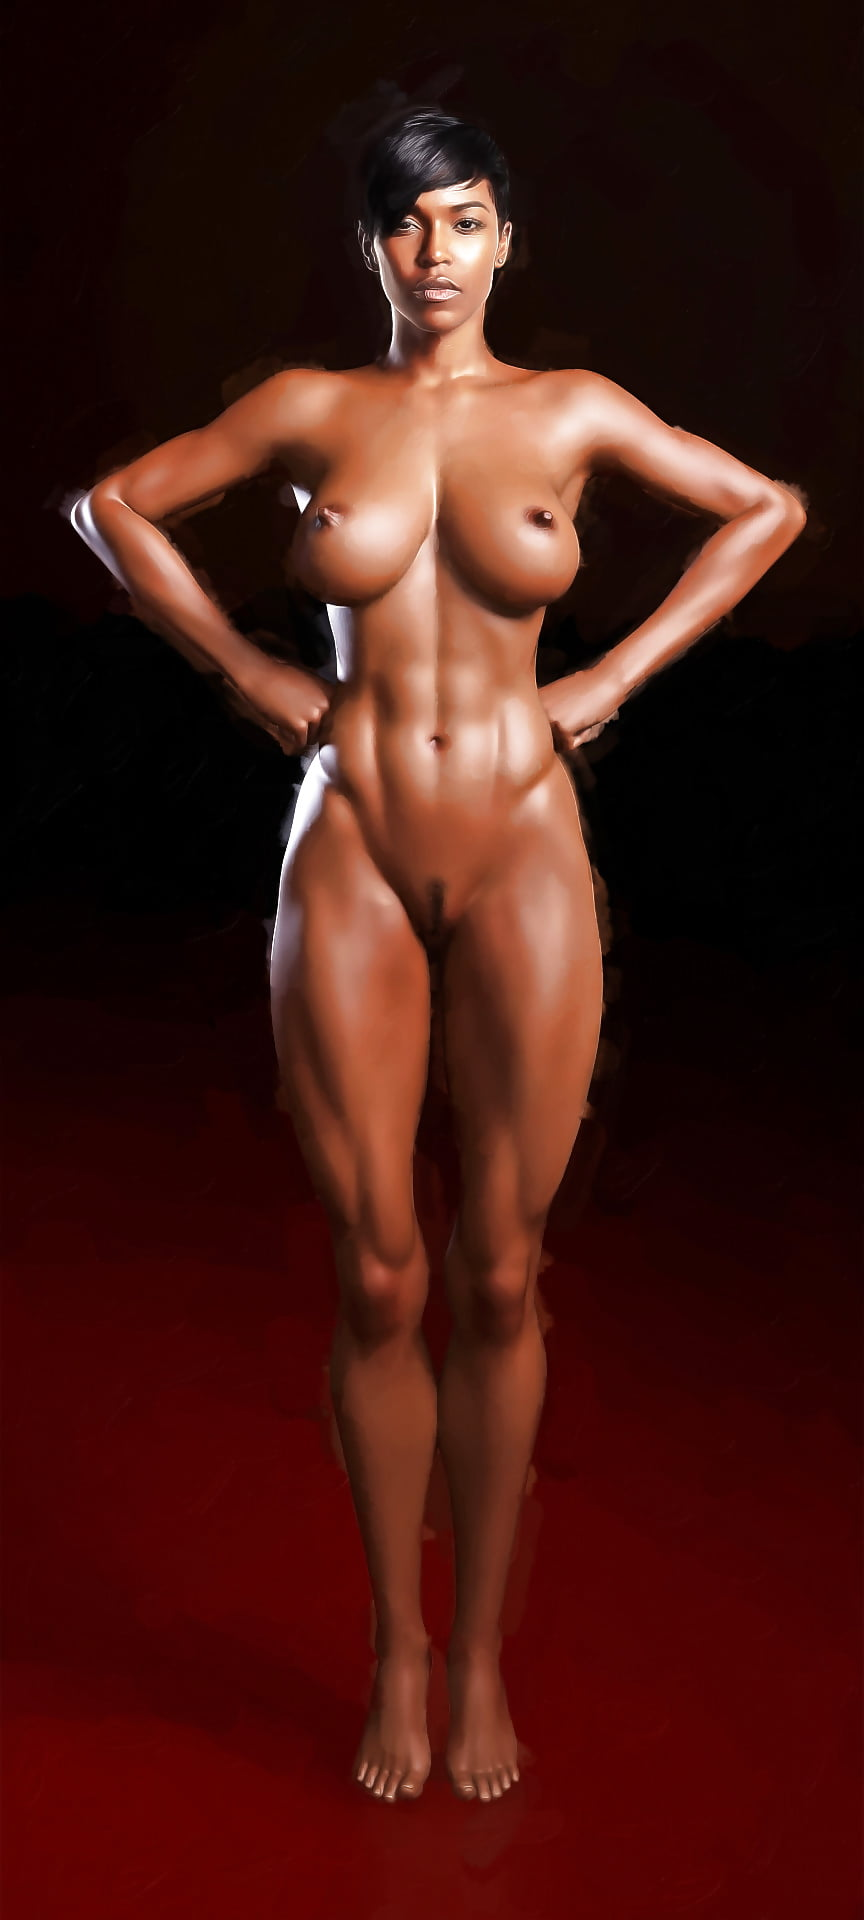 Wilson thick athlete nude